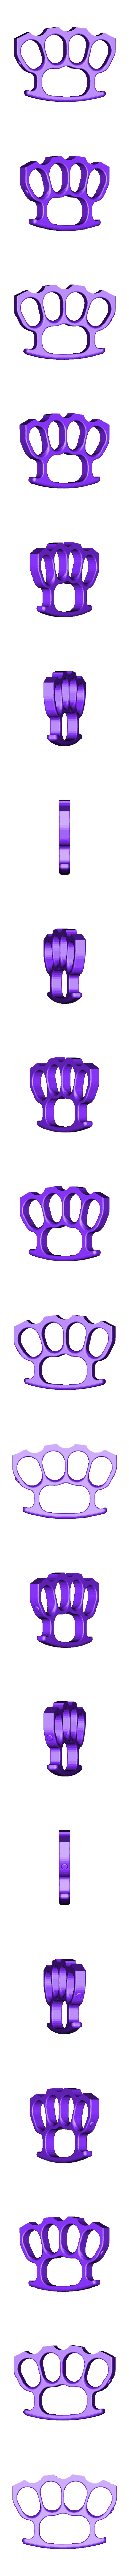 knuckle-duster-1 (1).stl Download free STL file KNUCKELS-DUSTER • Model to 3D print, poodyfaisal